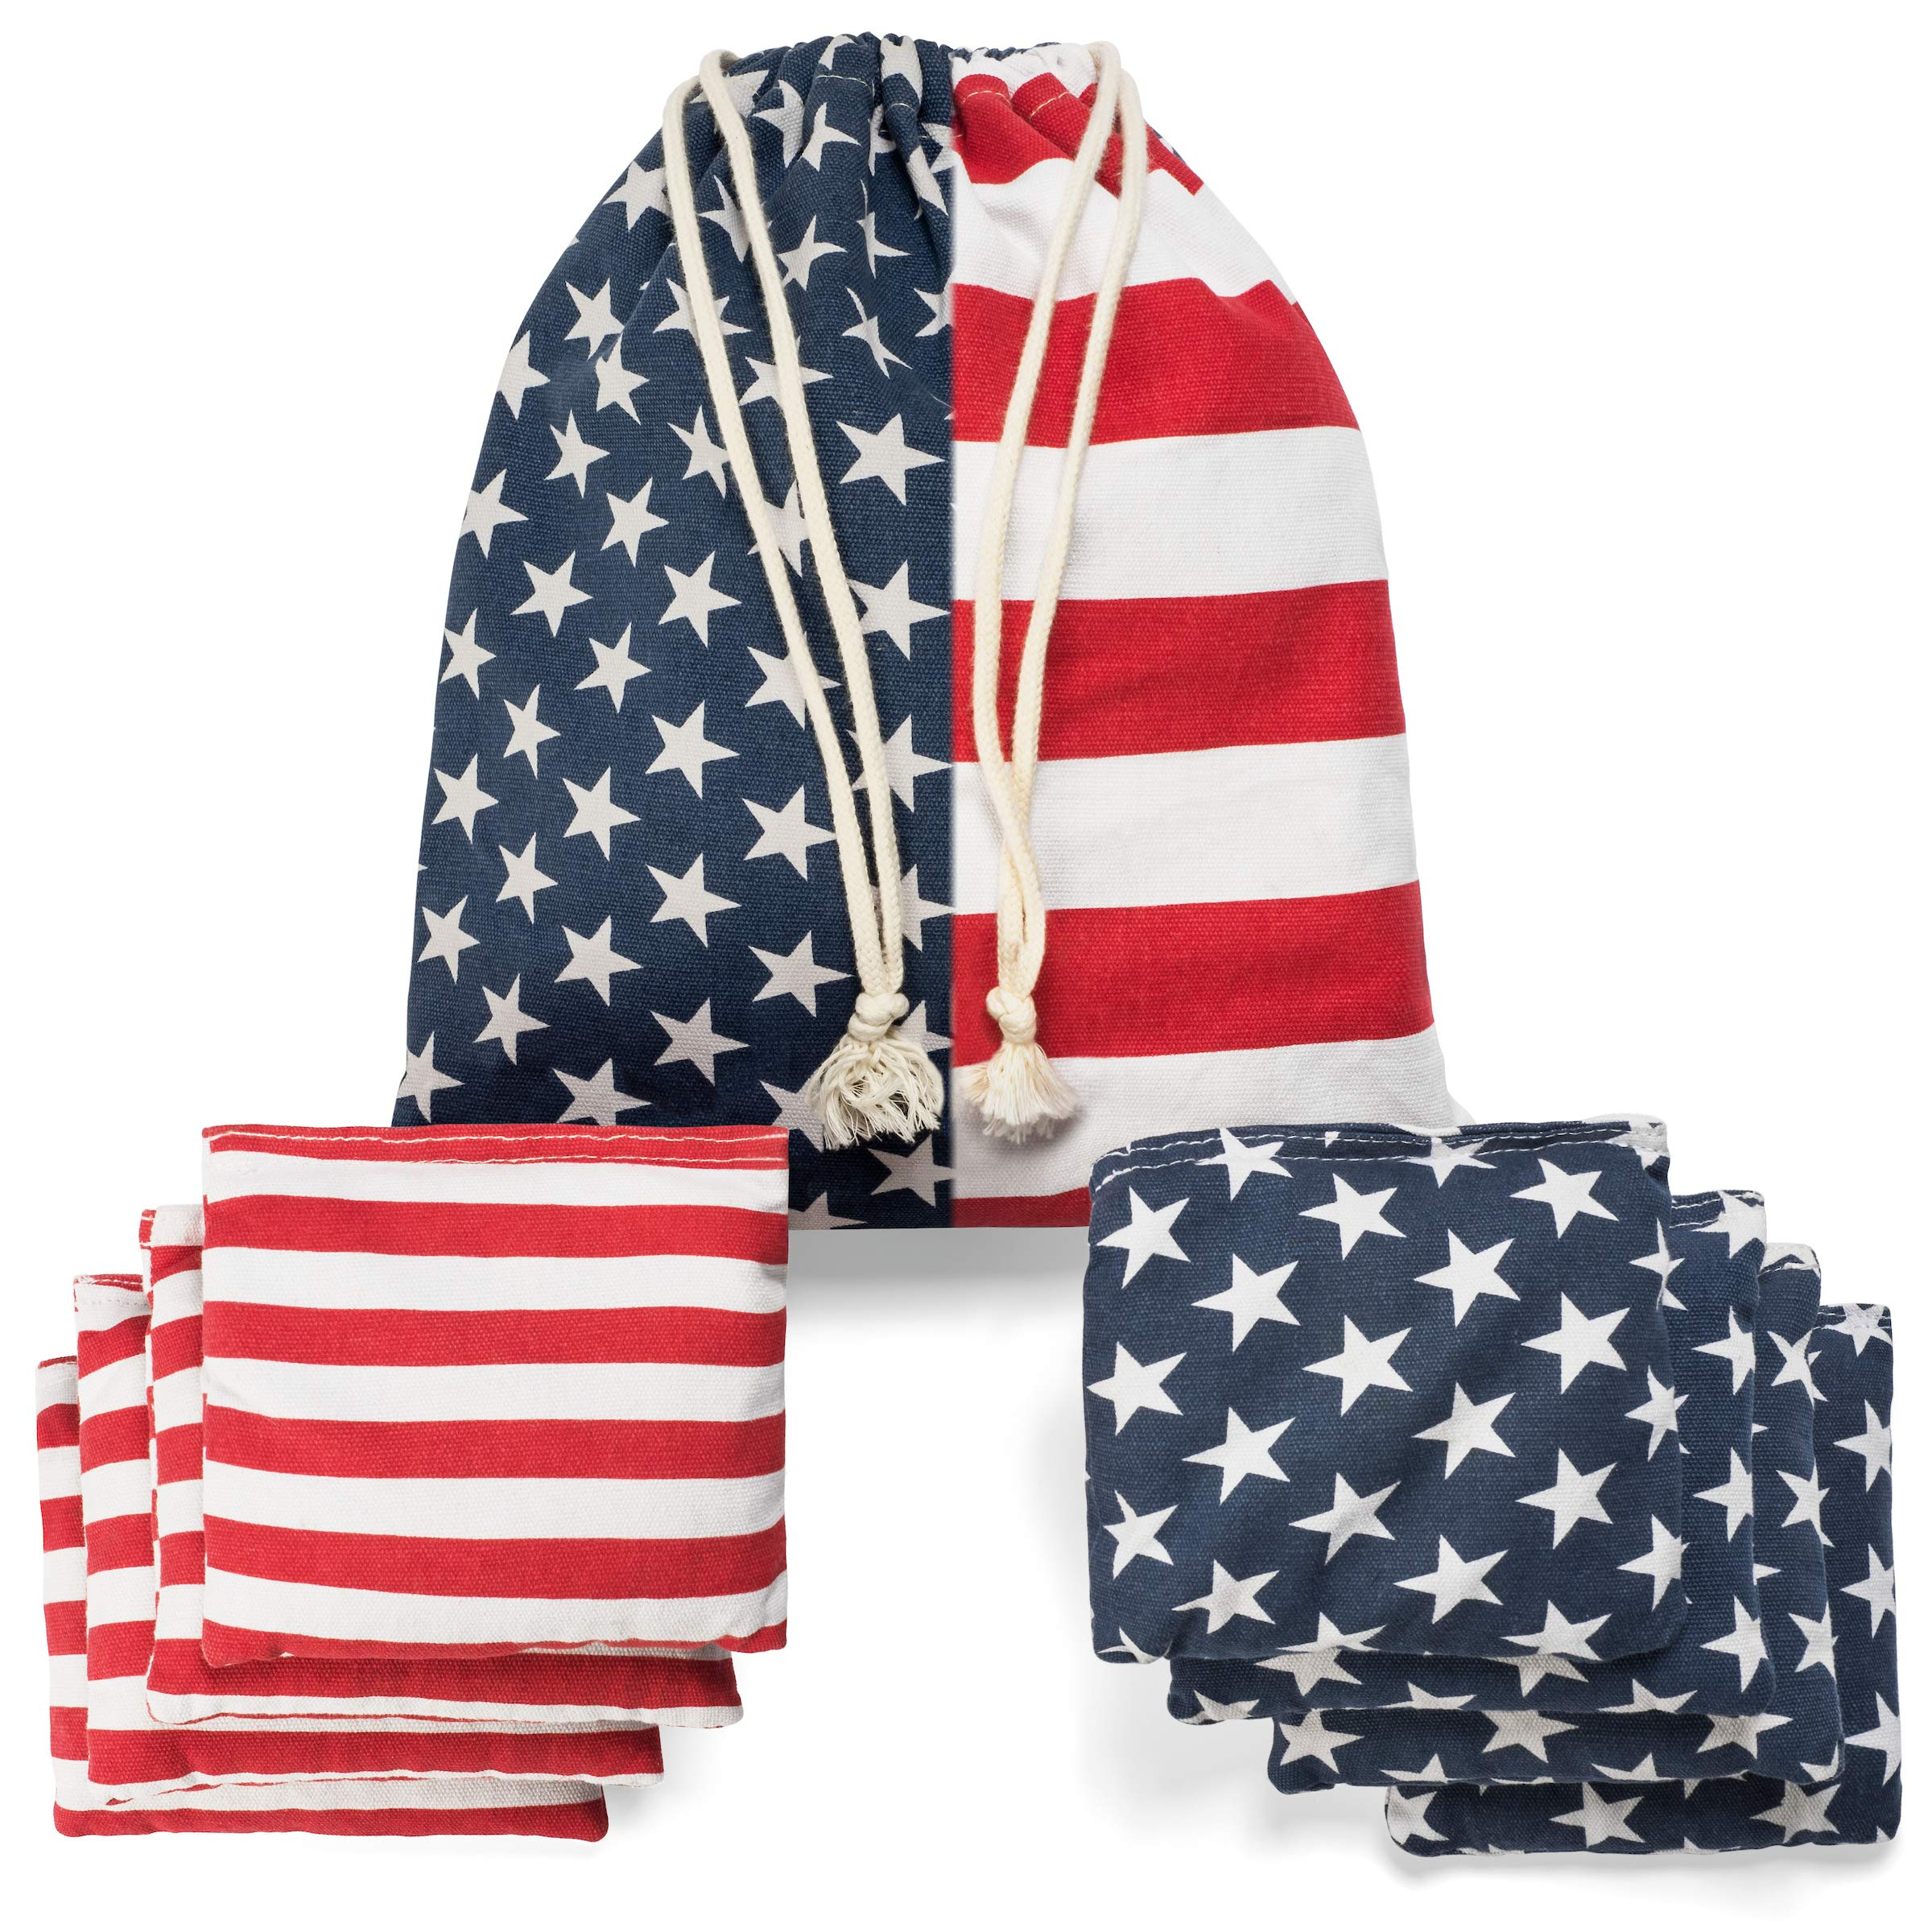 Cornhole Bags Weather Resistant Cornhole Bean Bags Duckcloth Canvas Corn Filled Double Stitched Corn Hole Bean Bags Portable Tote Bag American Flag Regulation Cornhole Bags For Kid Tossing Tournament by TOYSHARING